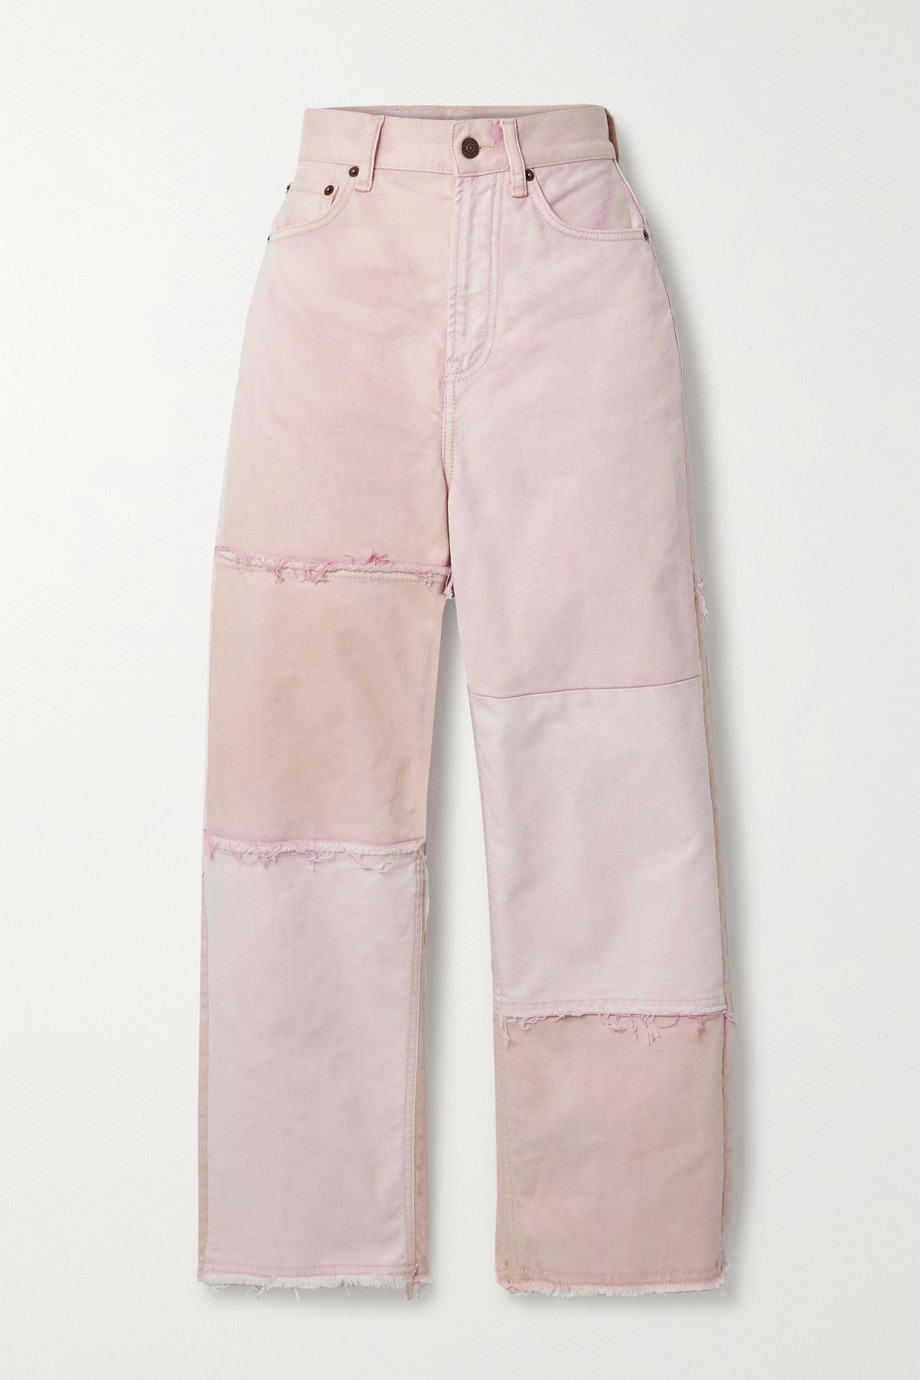 Acne Studios + NET SUSTAIN 1993 frayed patchwork organic high-rise straight-leg jeans